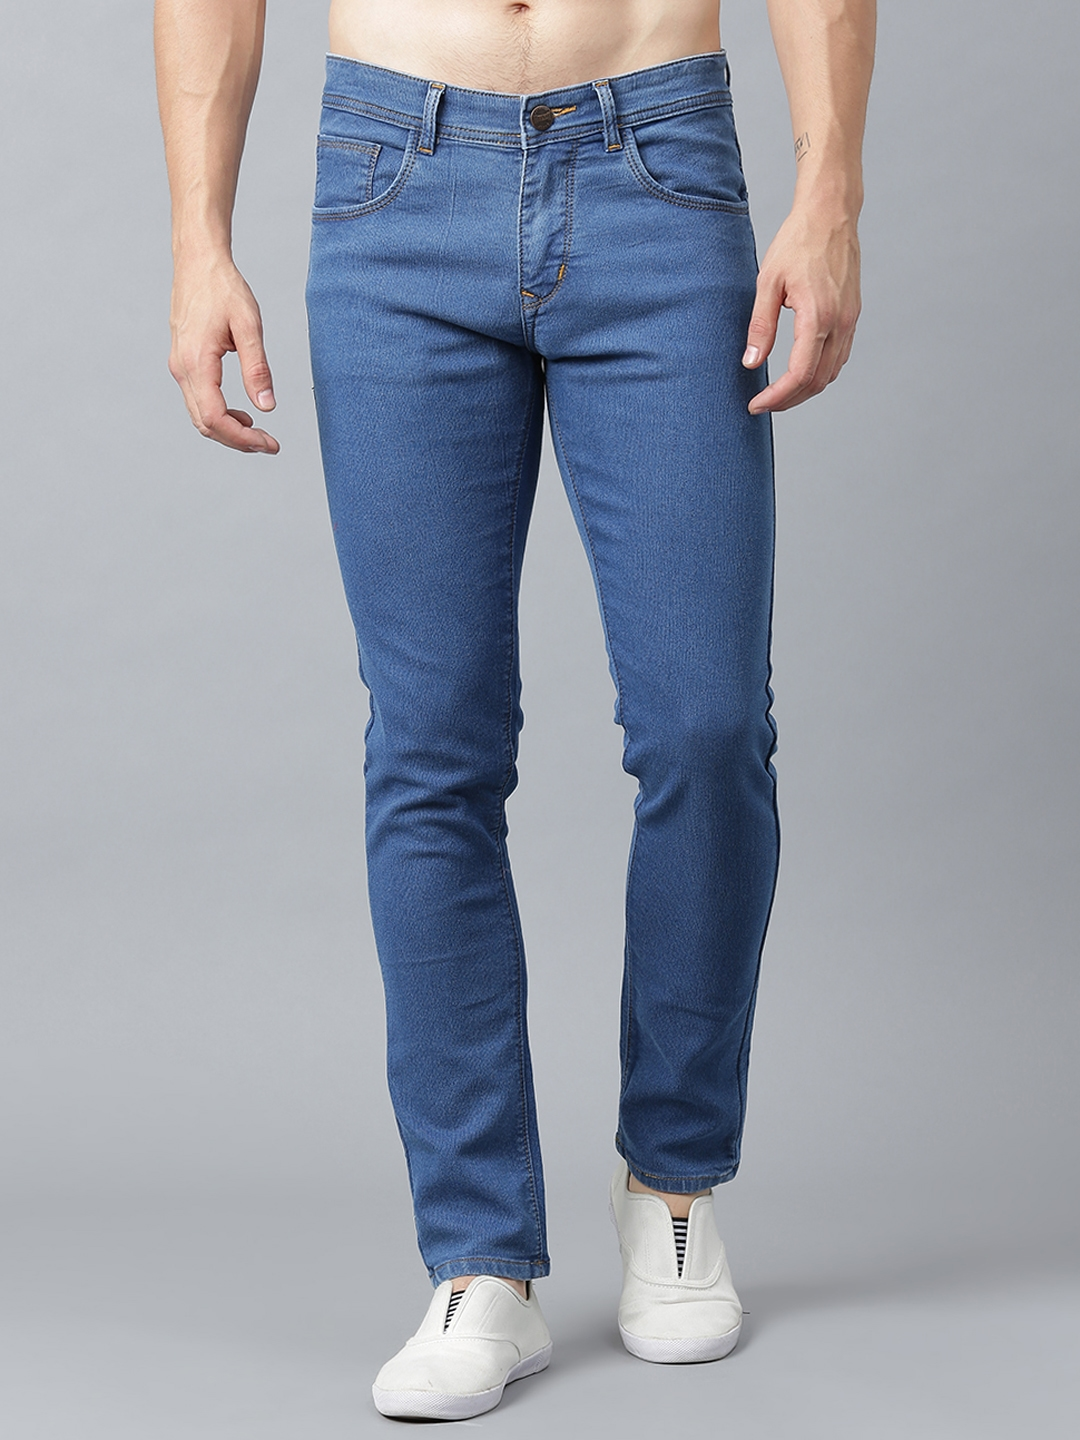 Stylox Men Blue Slim Fit Mid Rise Clean Look Stretchable Jeans